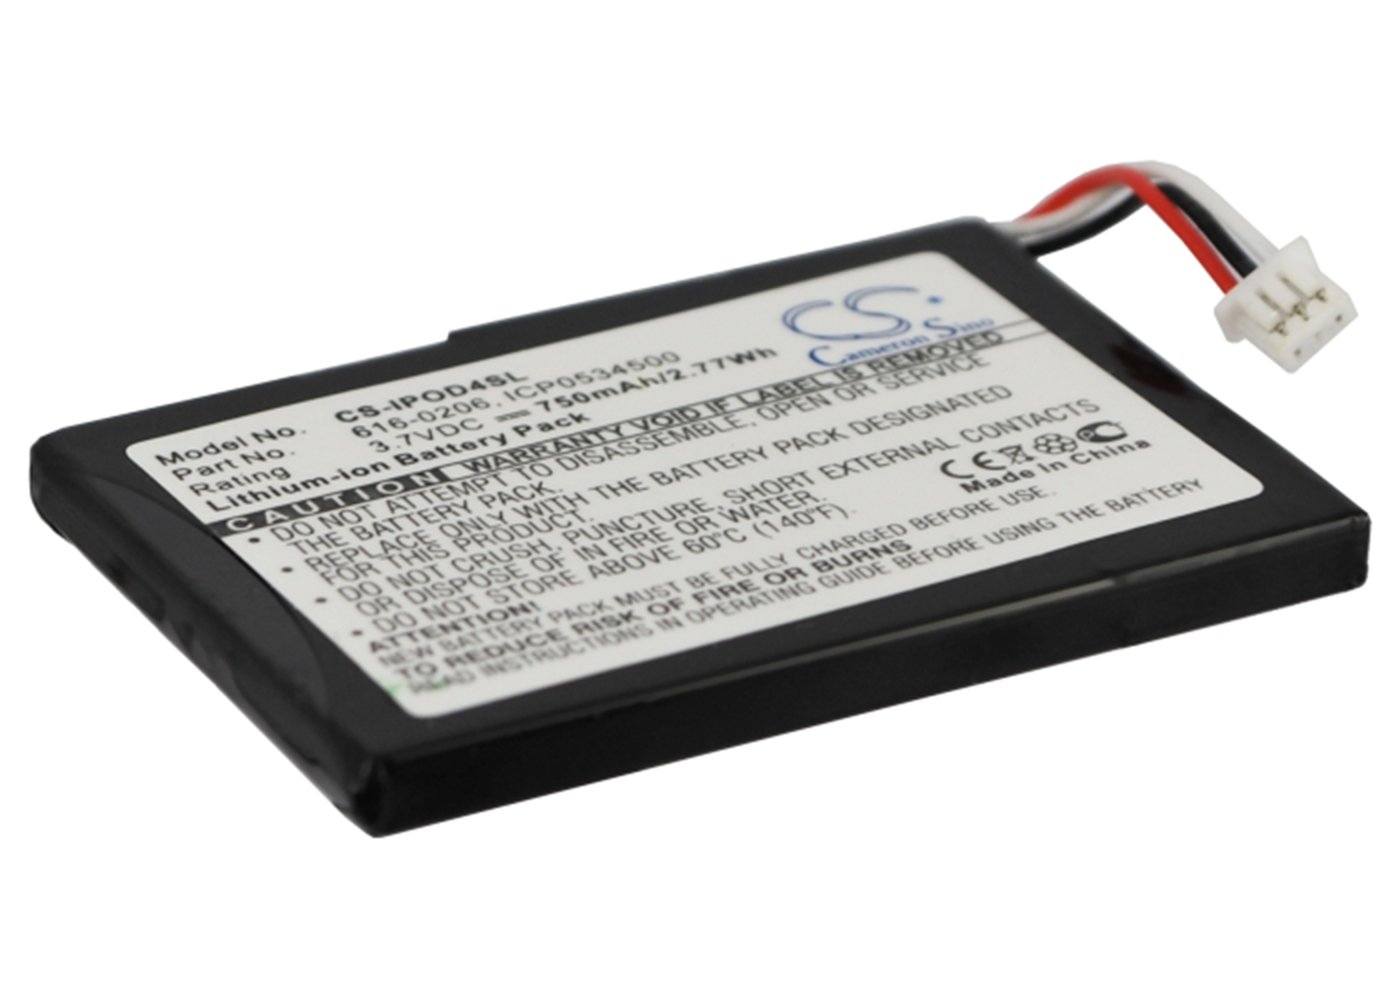 VINTRONS 750mAh Battery for Apple 616-0183, 616-0206, 616-0215, AW4701218074, ICP0534500,